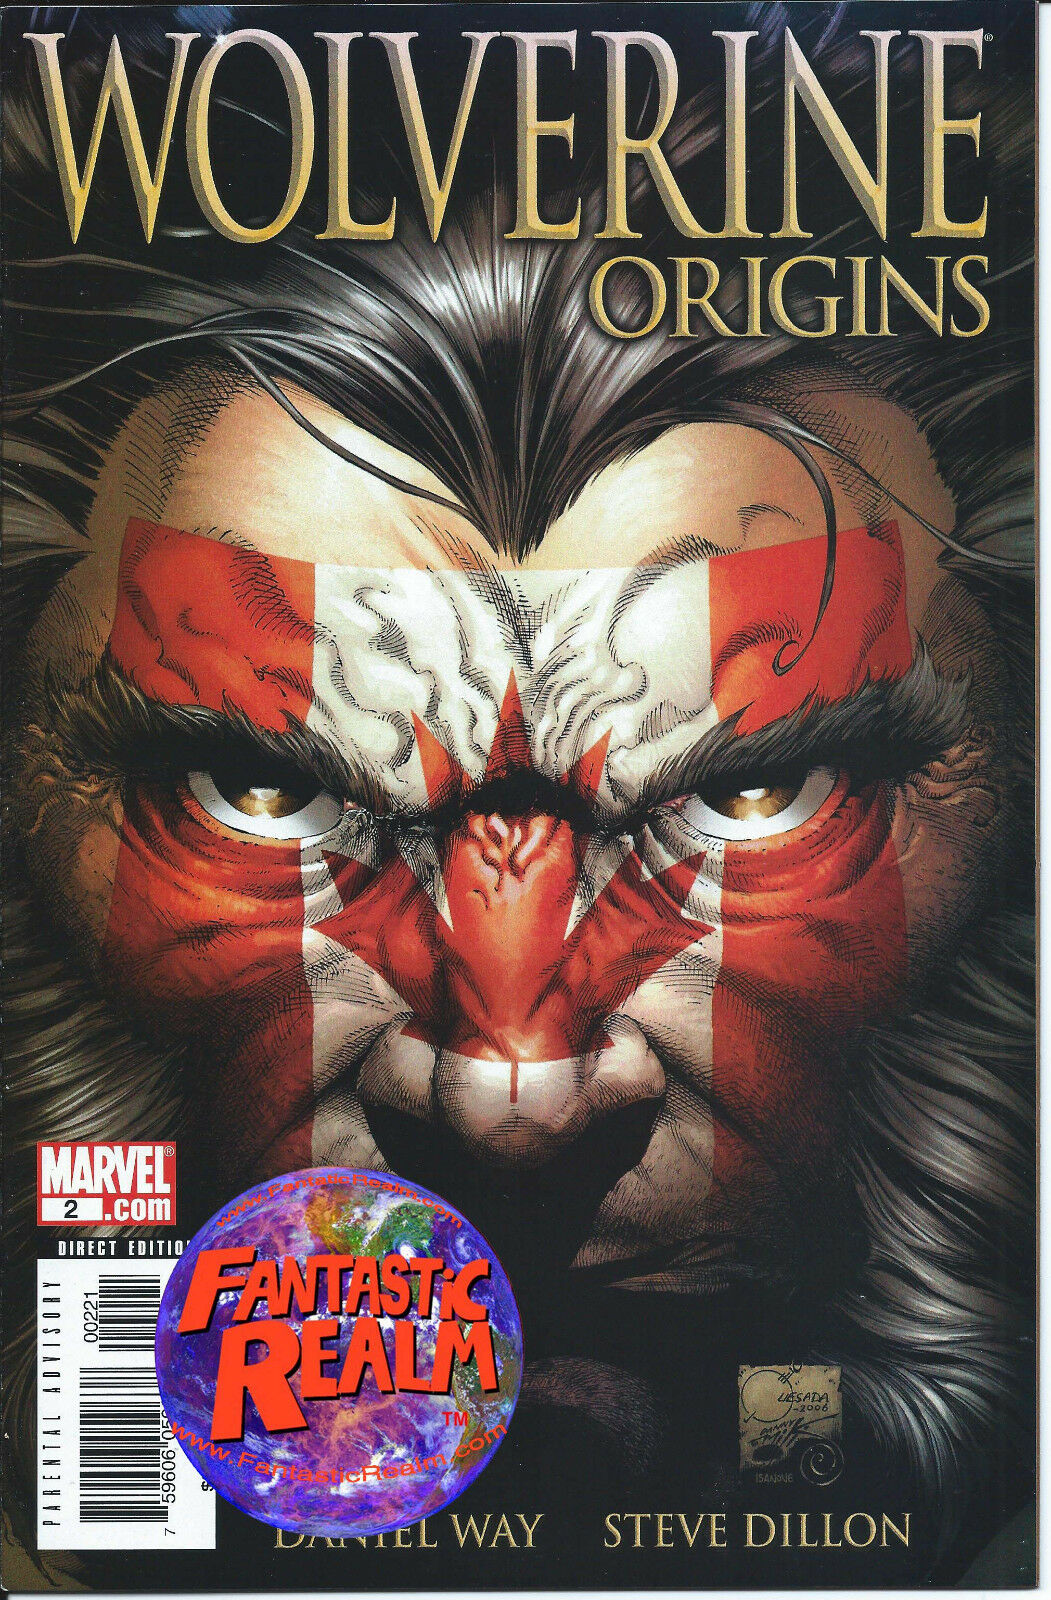 WOLVERINE ORIGINS #2 1:100 CANADIAN FLAG VARIANT MARVEL COMICS